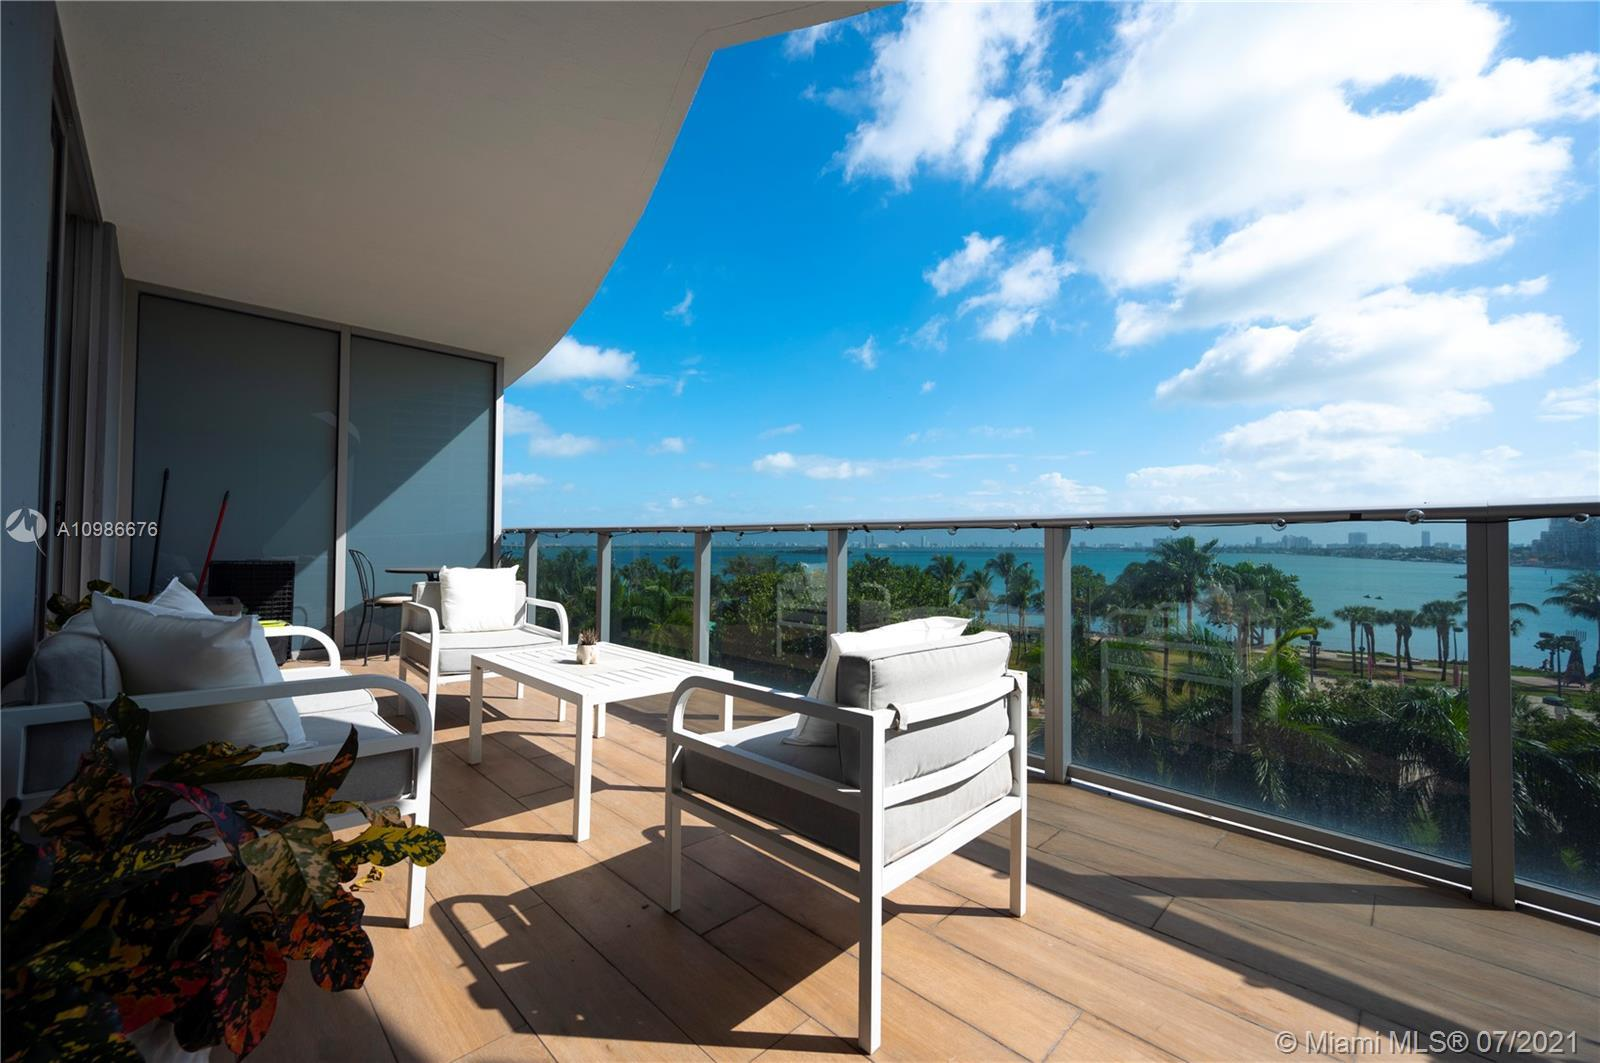 PRICED TO SELL ! This SPECTACULAR  but AFFORDABLE 1bed/1.5bath unit is one of the very few units in